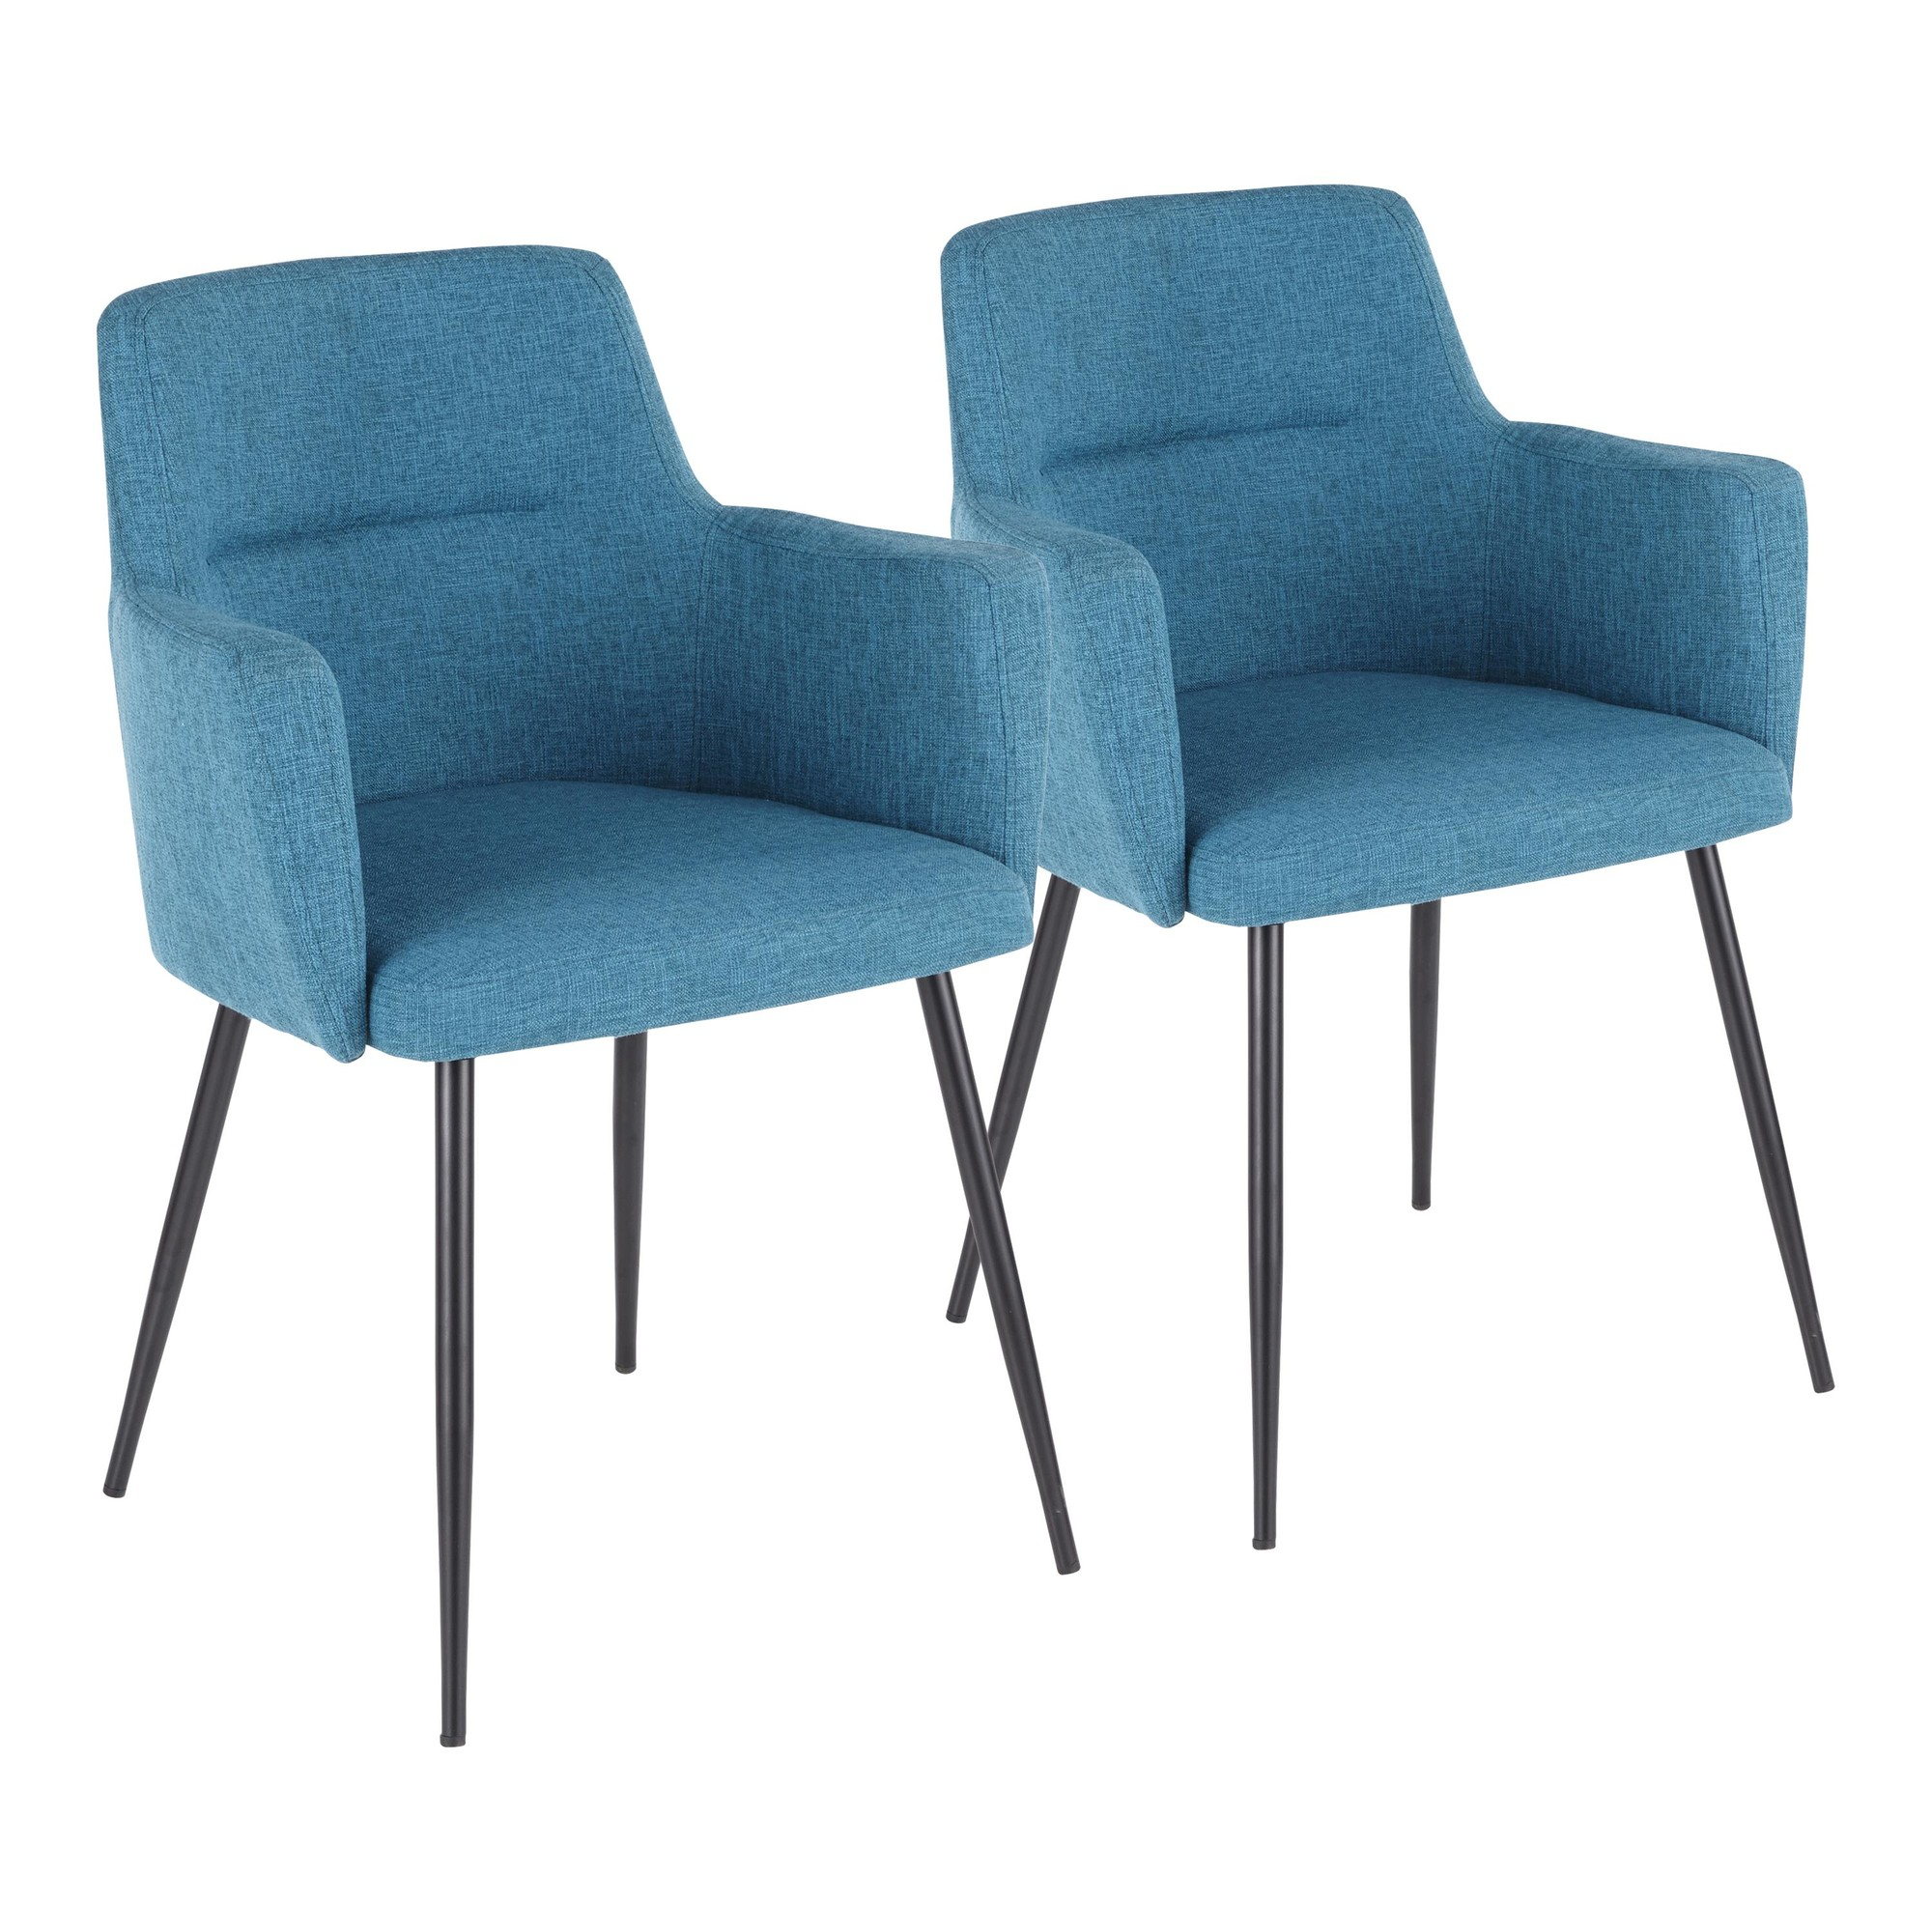 Andrew Contemporary Dining Accent Chair In Black With Teal